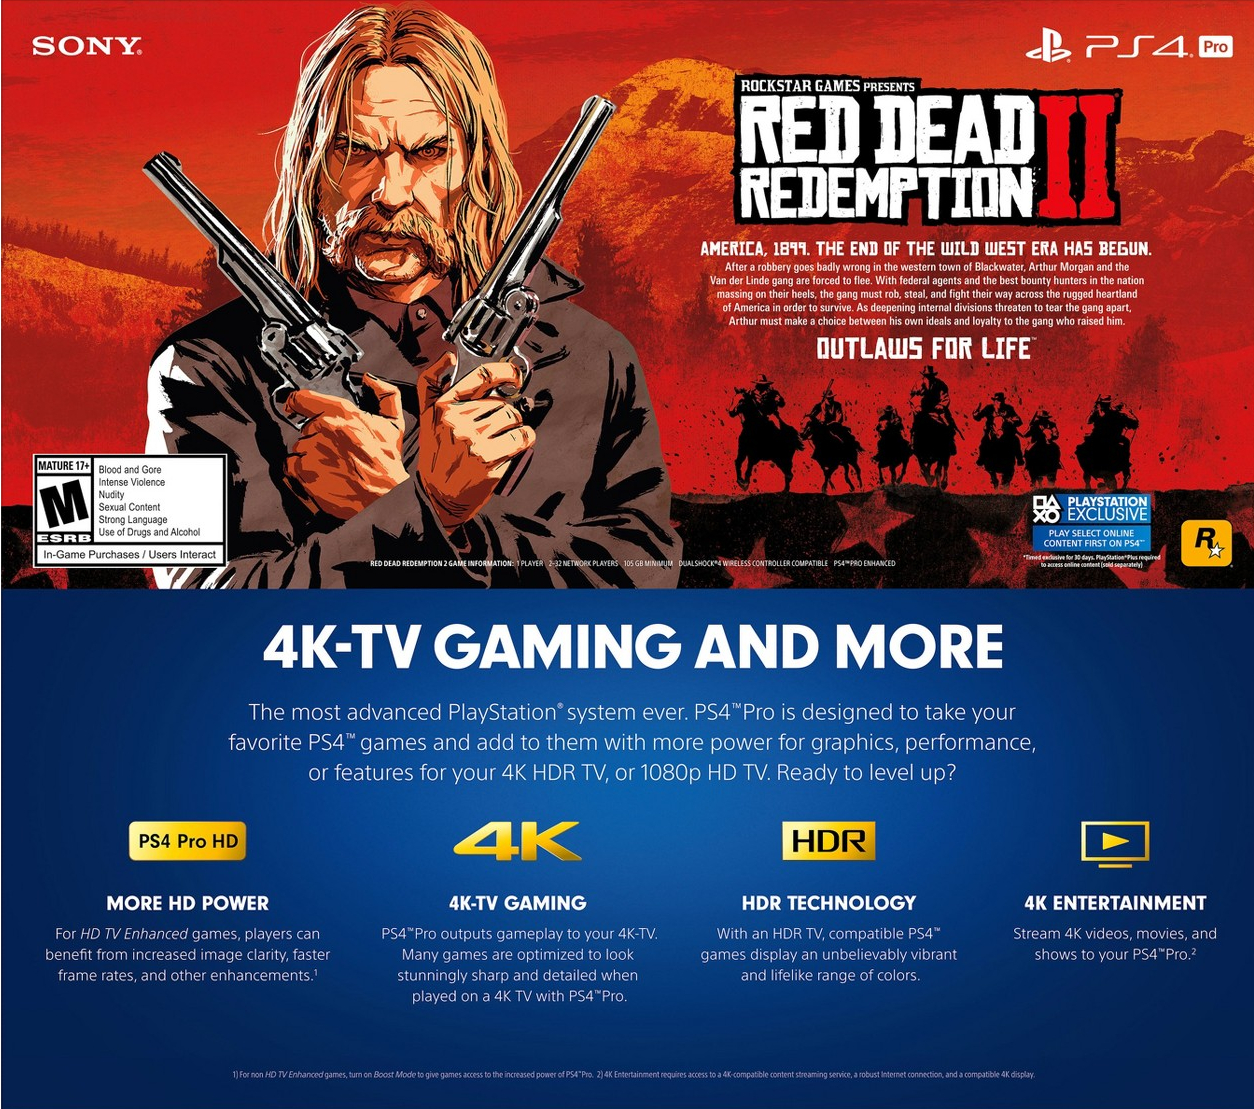 Red Dead Redemption 2 needs an absurd 100GB-plus install